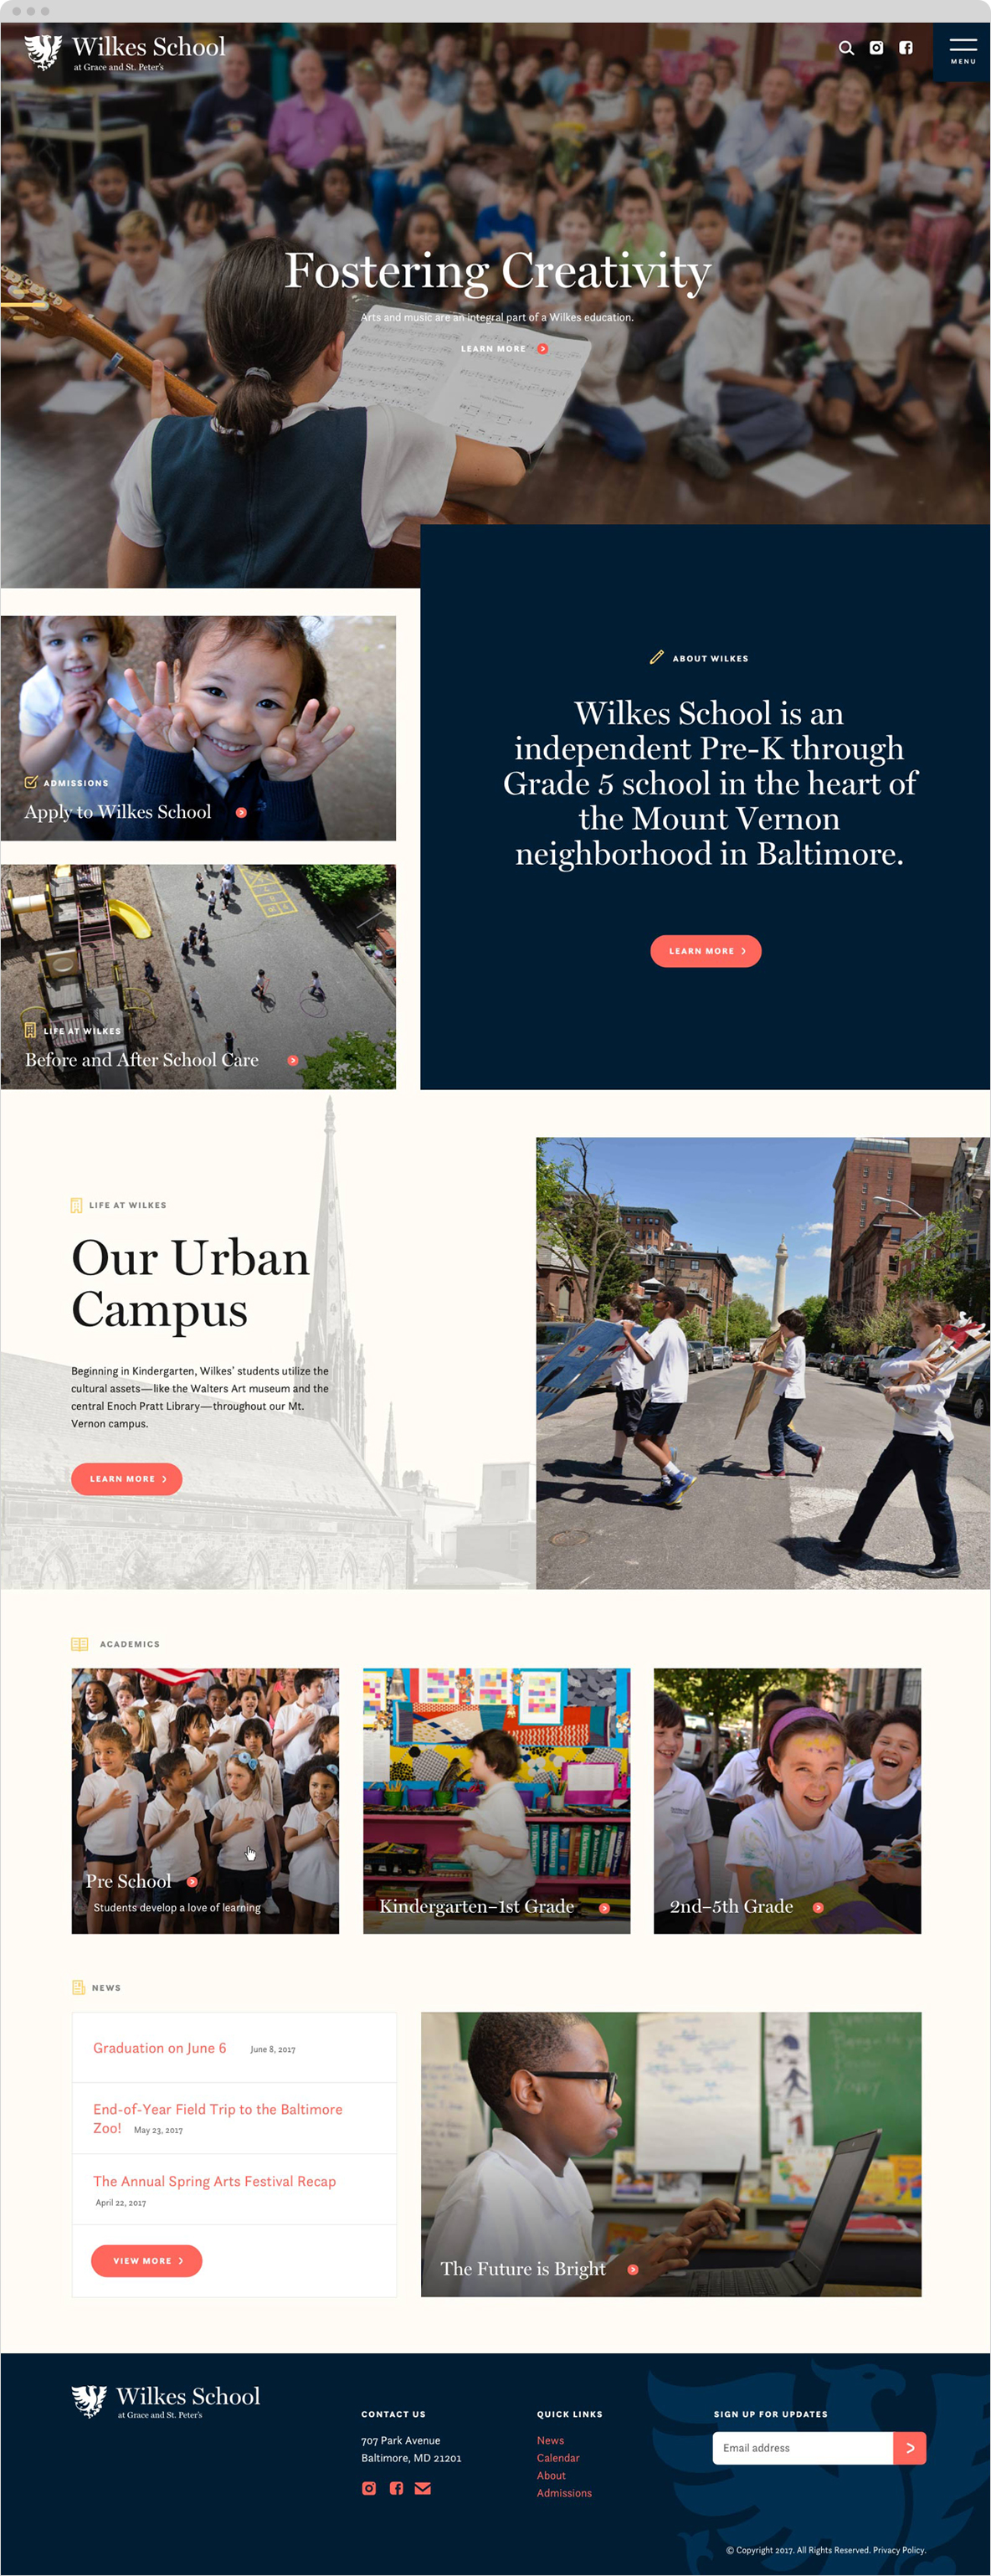 wilkes school homepage of website